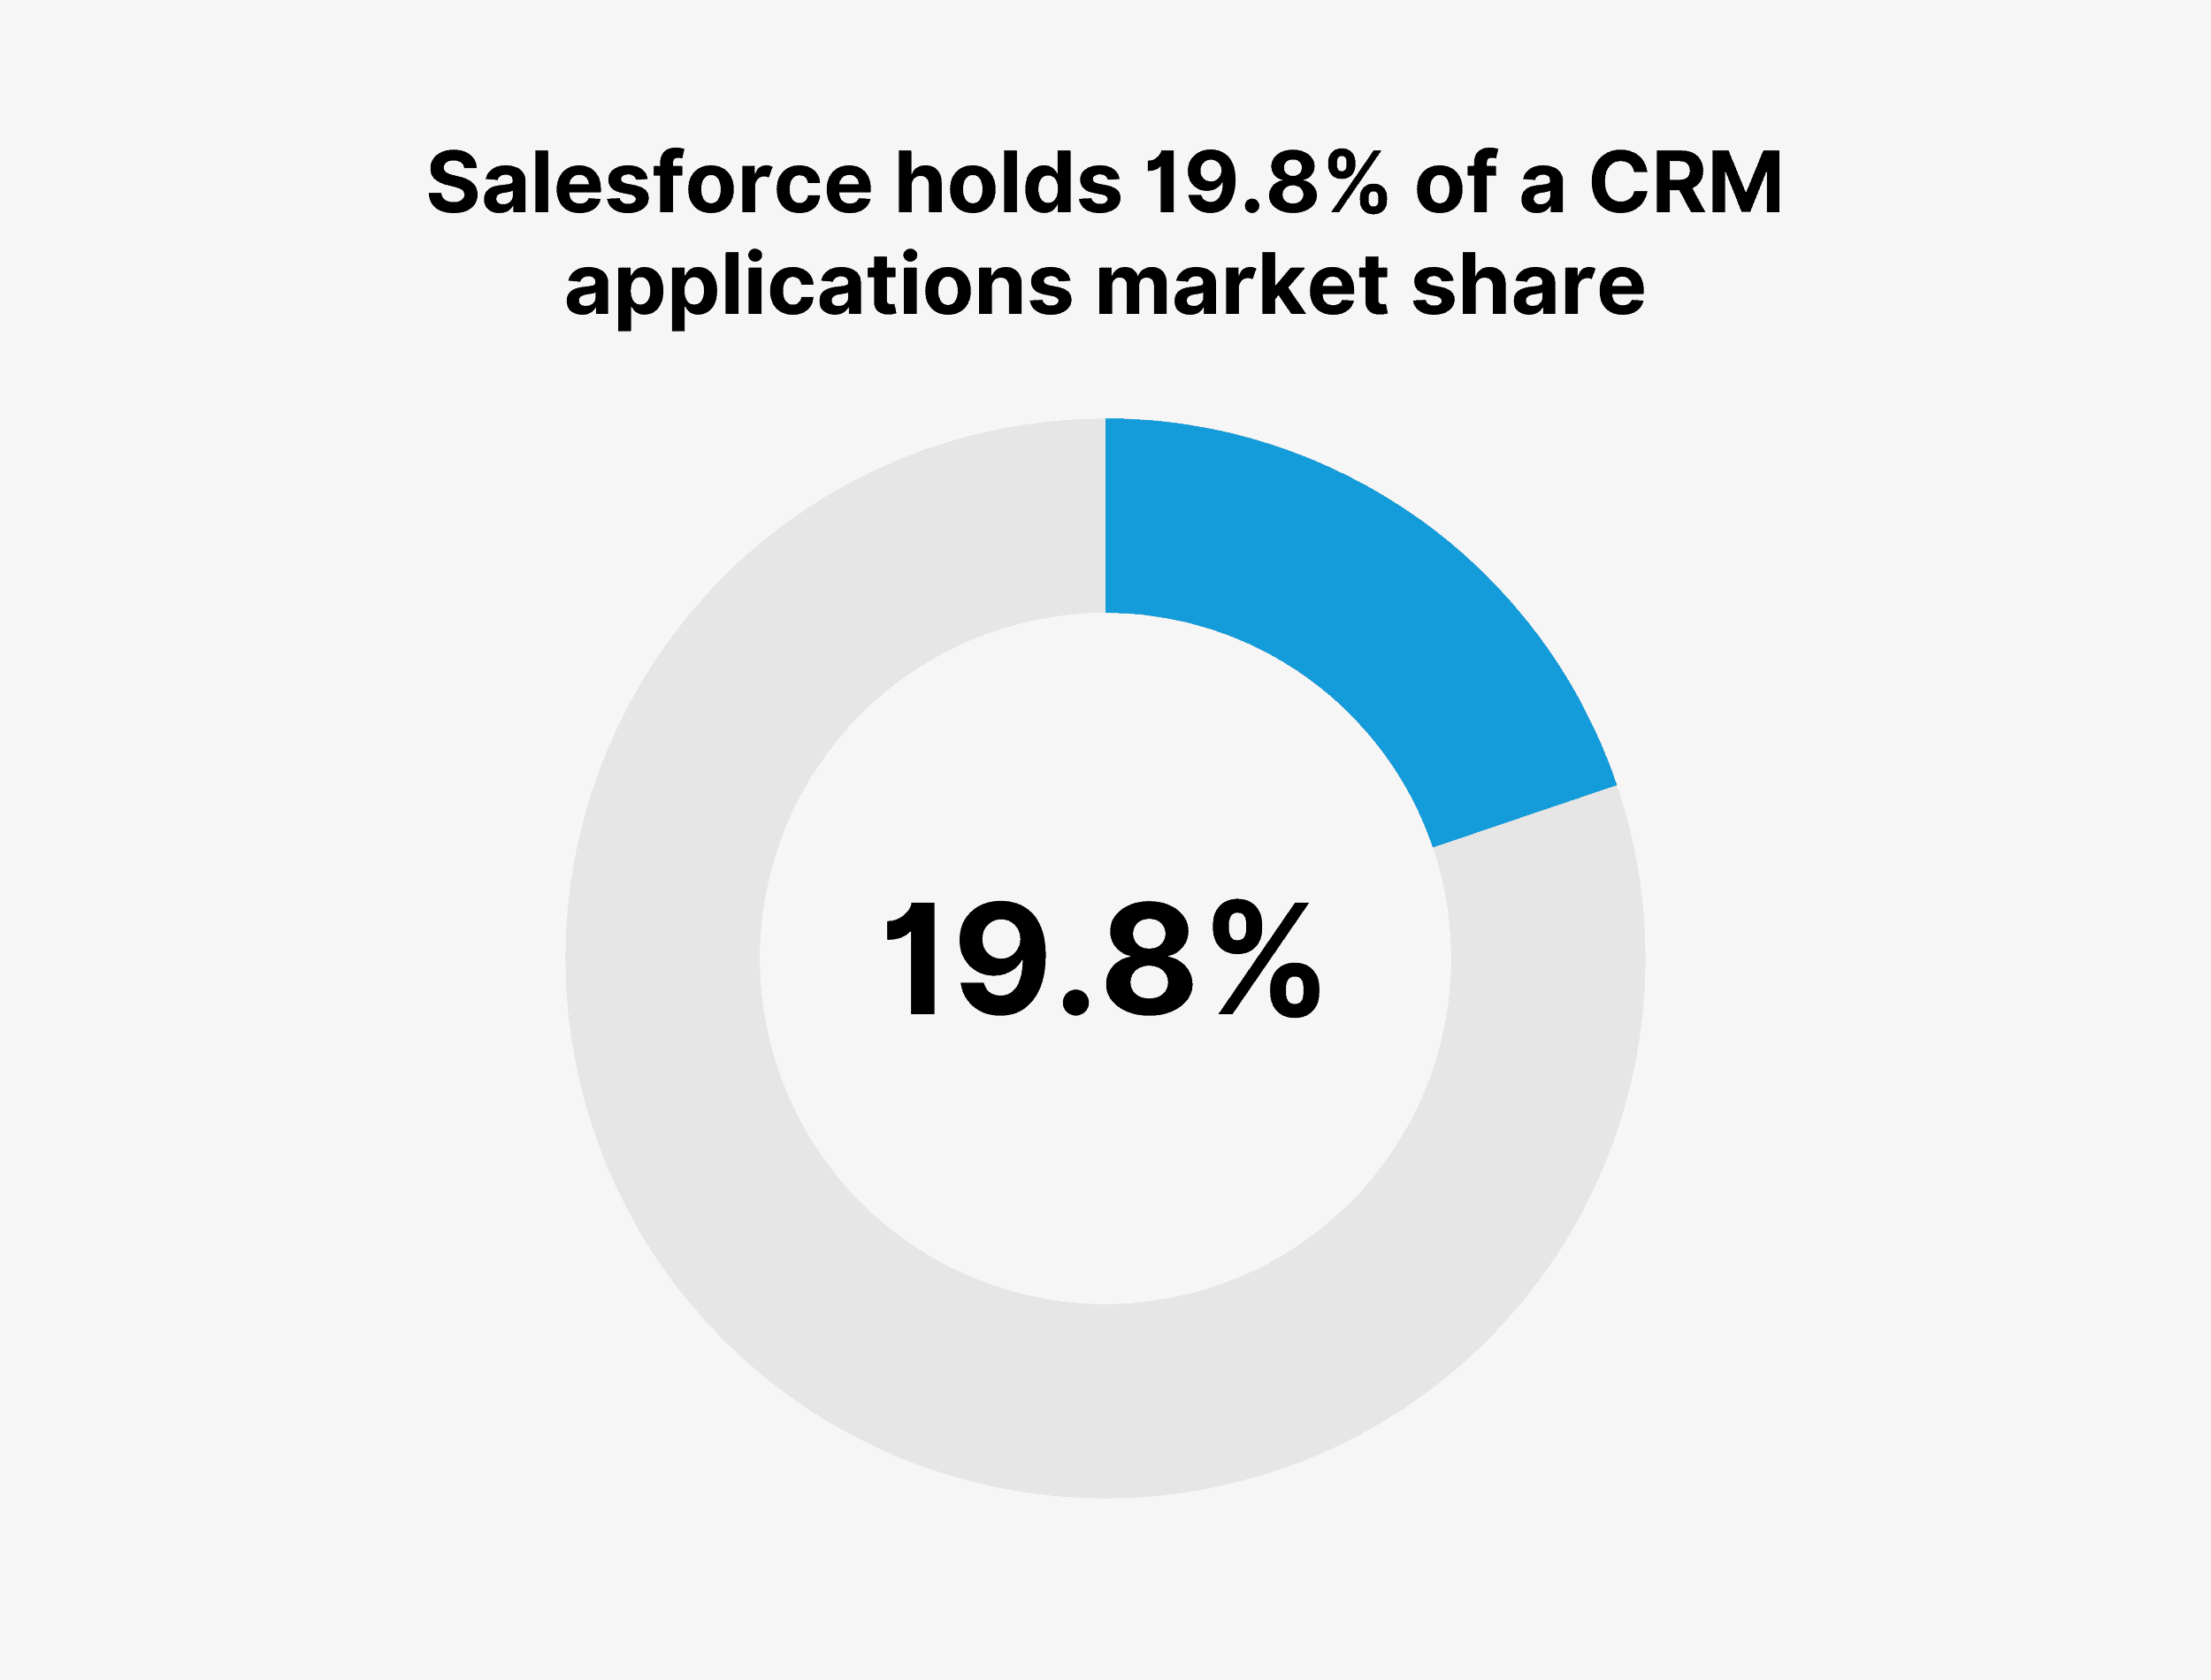 Salesforce holds 19.8% of a CRM applications market share